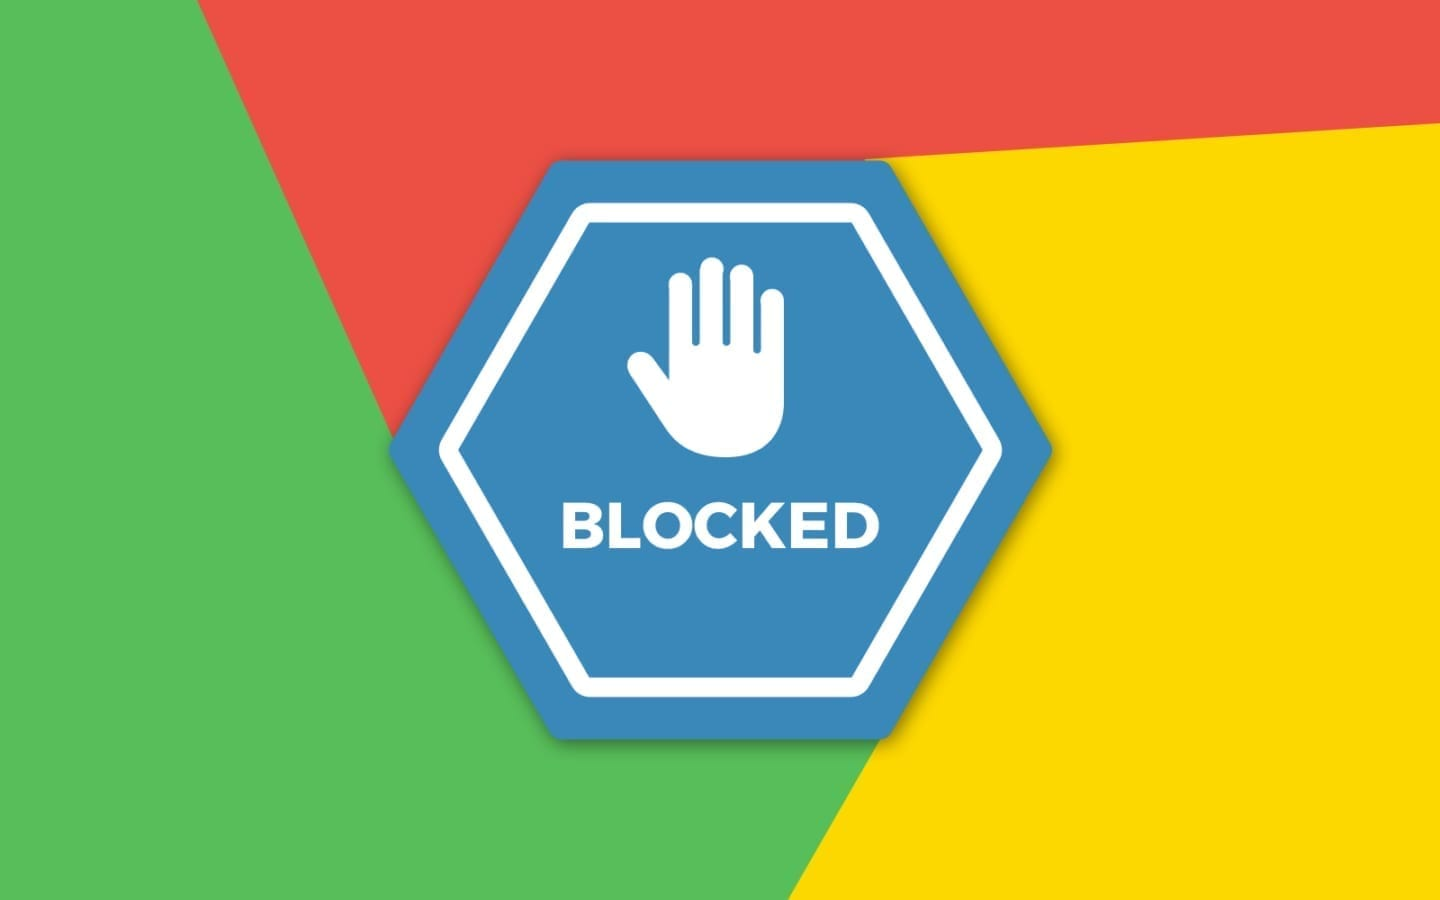 How to disable and enable Google Chrome ad blocker